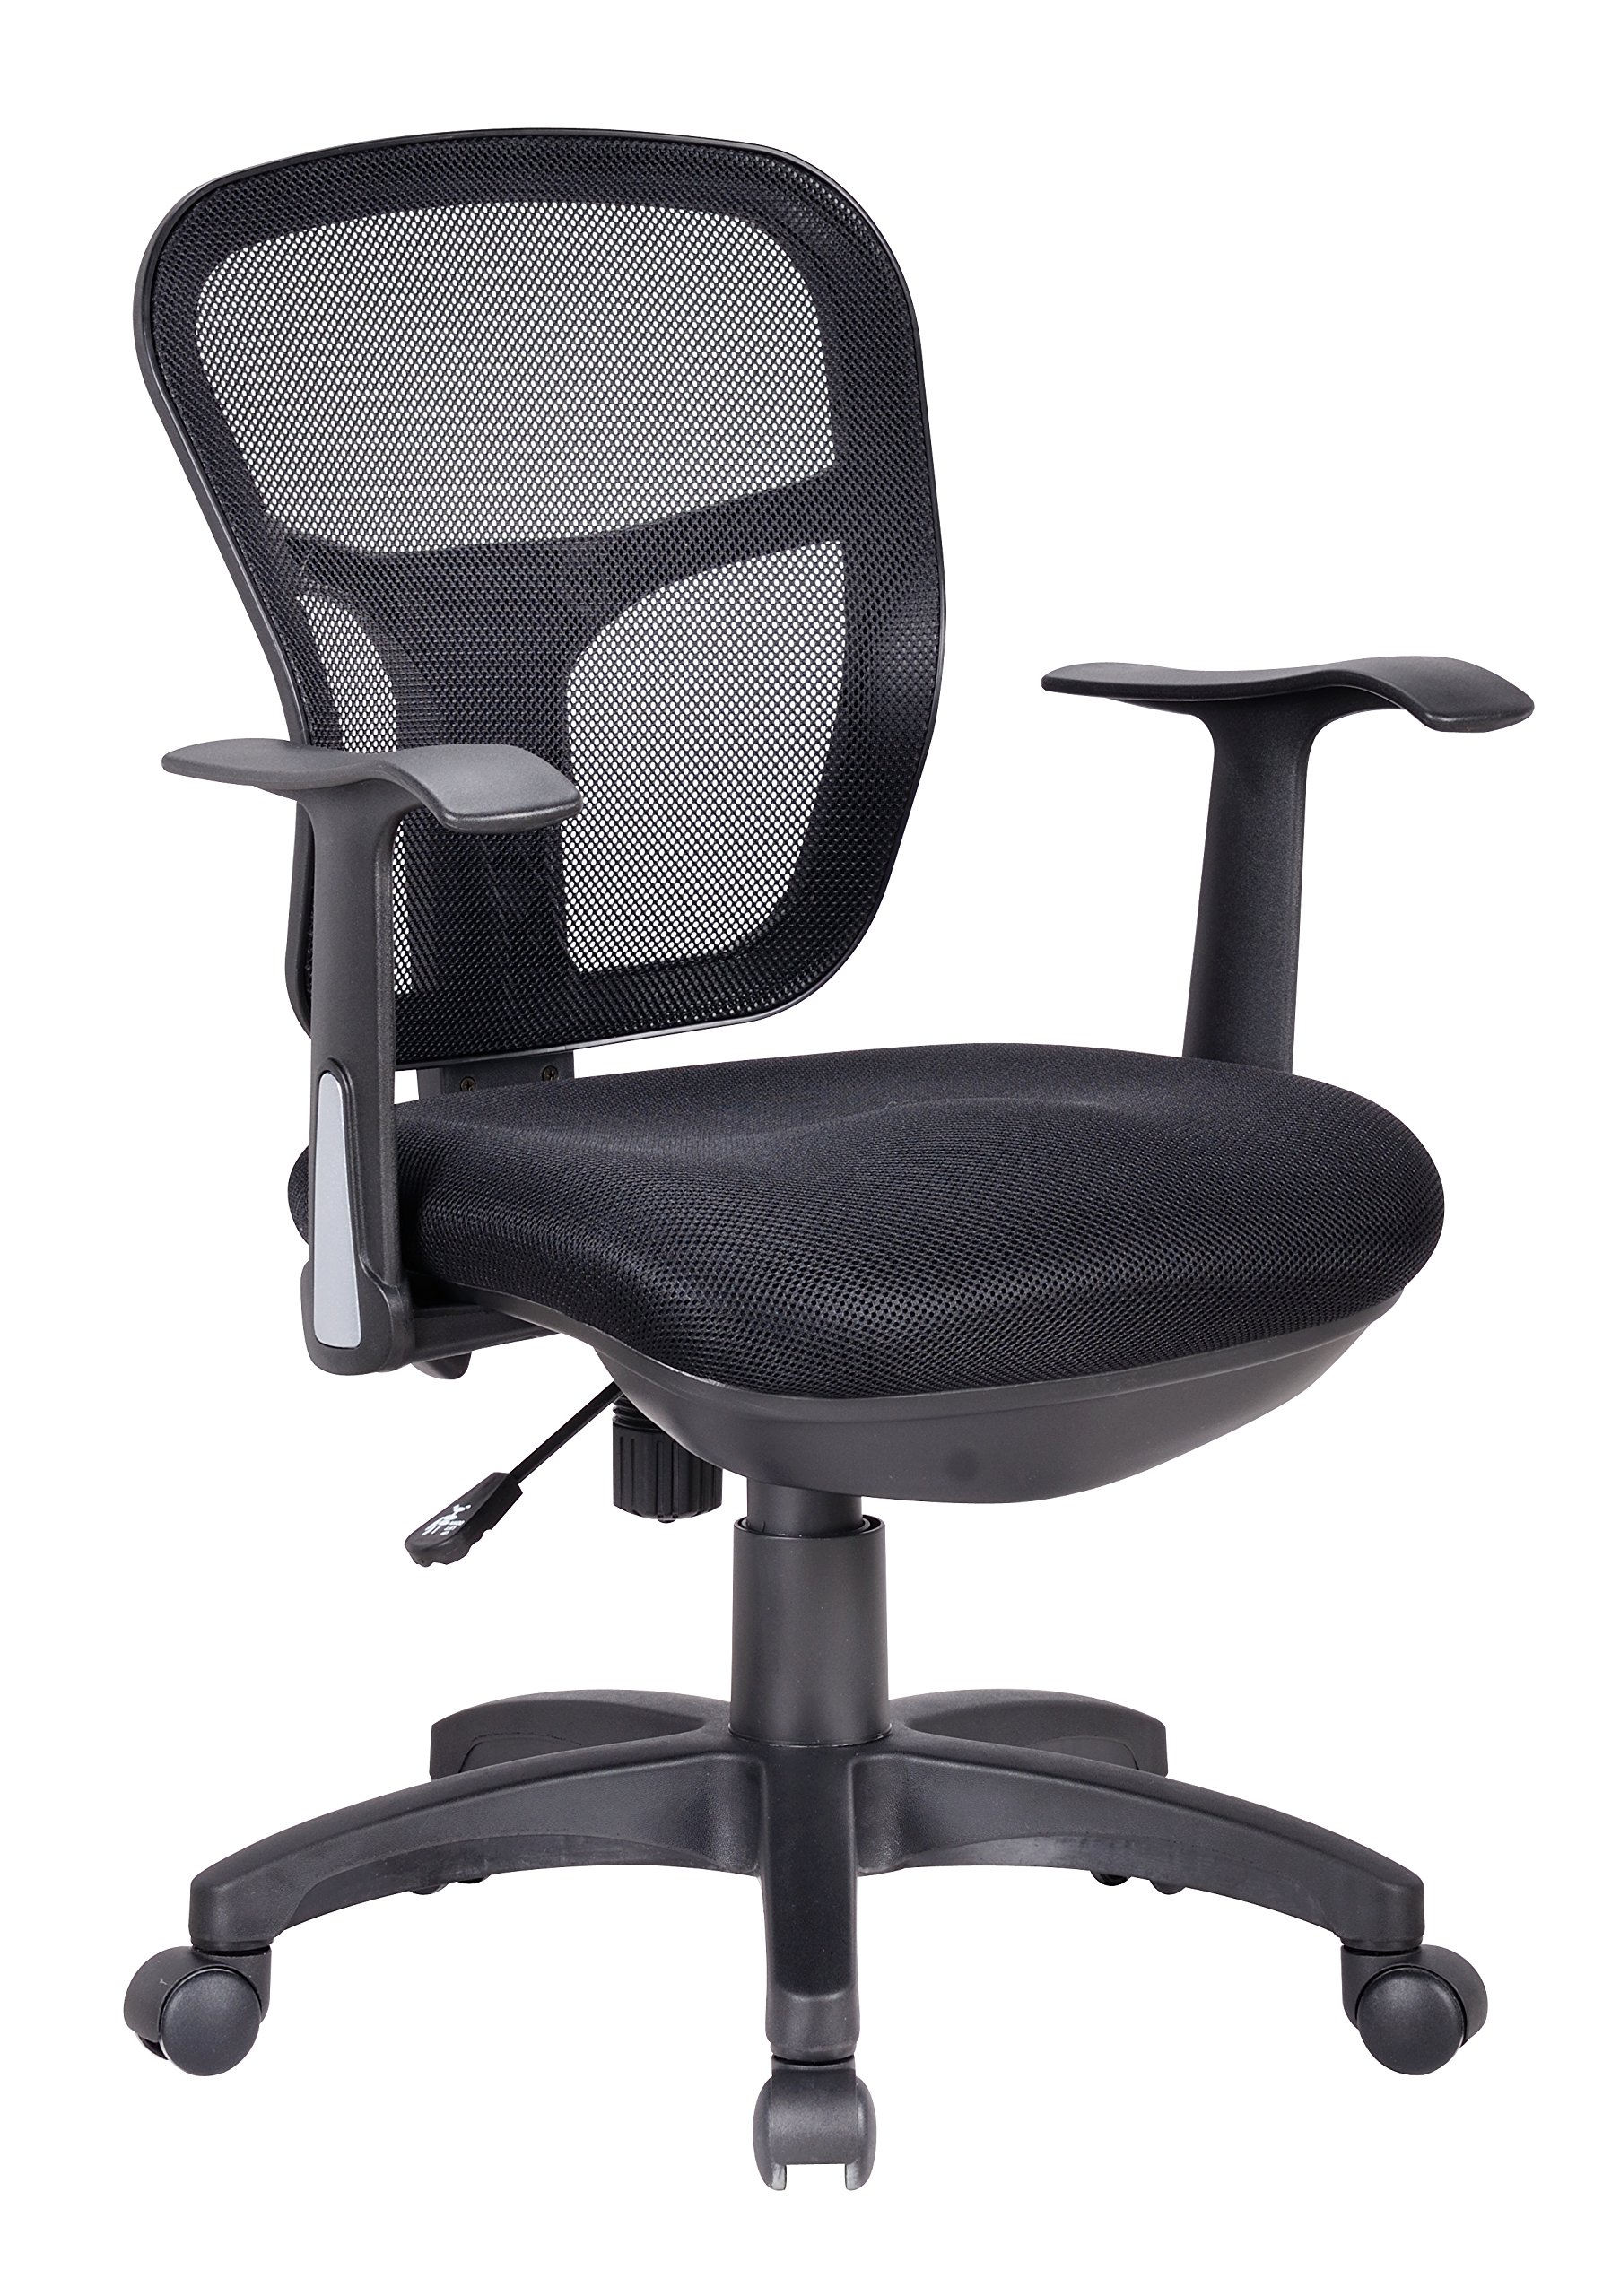 Office Factor Ergonomic Black Mesh Task Conference Room Desk Office Chair Lumbar Support Extra Cushion on The Seat Fixed Arms Swivel Tilt Mechanism Swivel Adjustable Height